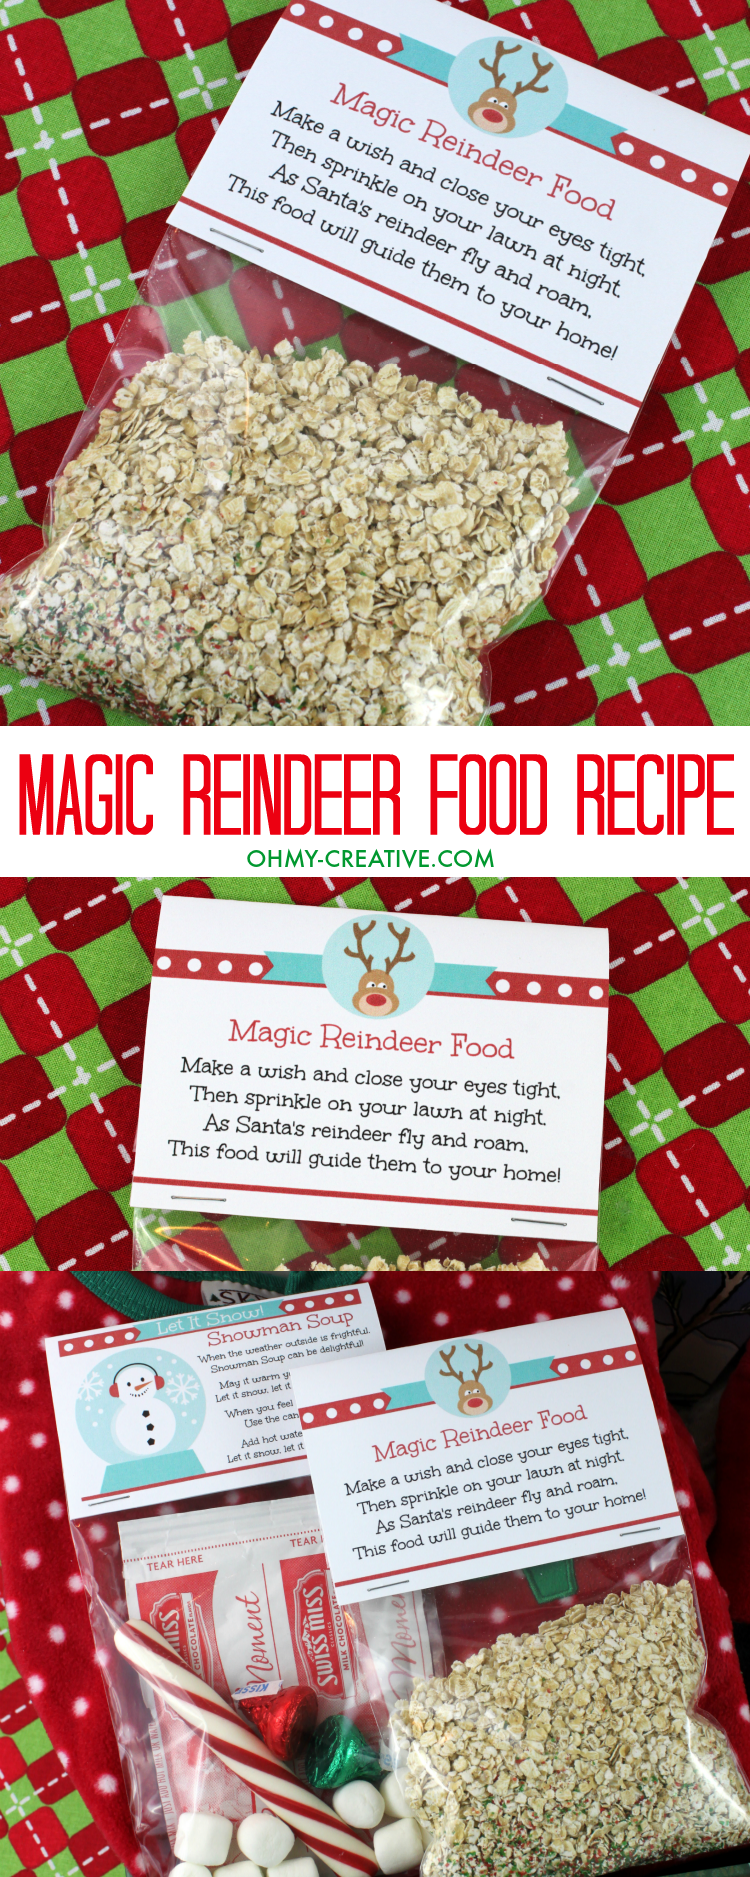 Magic reindeer food recipe and printable oh my creative magic reindeer food recipe ohmy creative reindeer food poem forumfinder